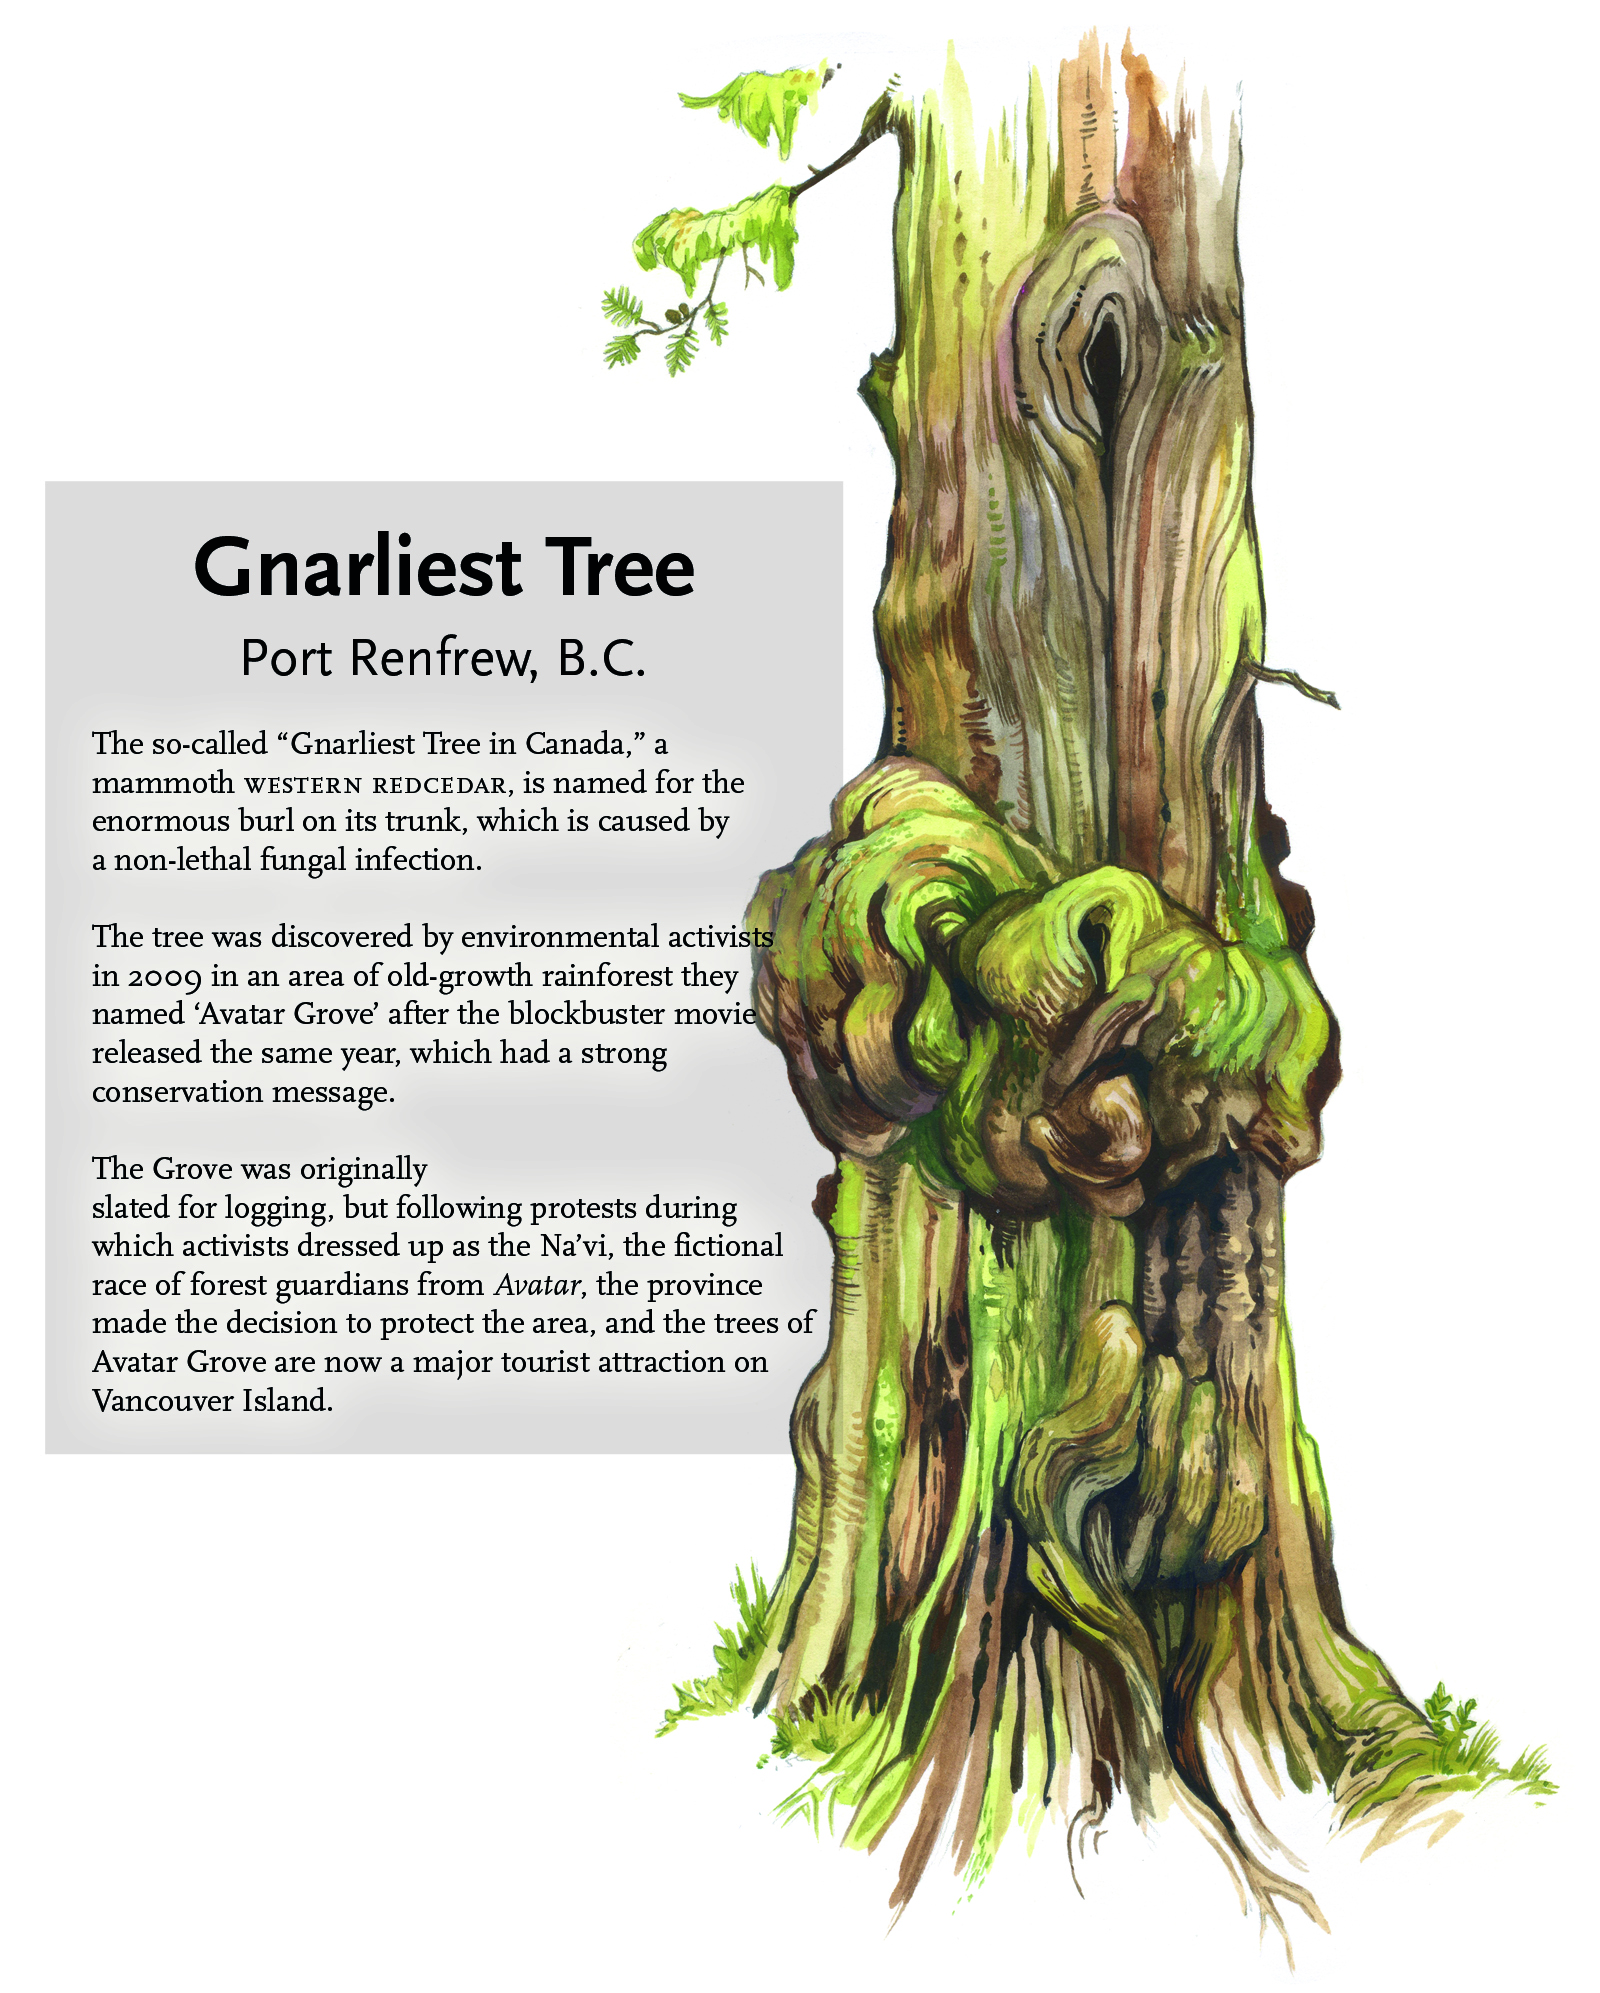 gnarliest tree illustration